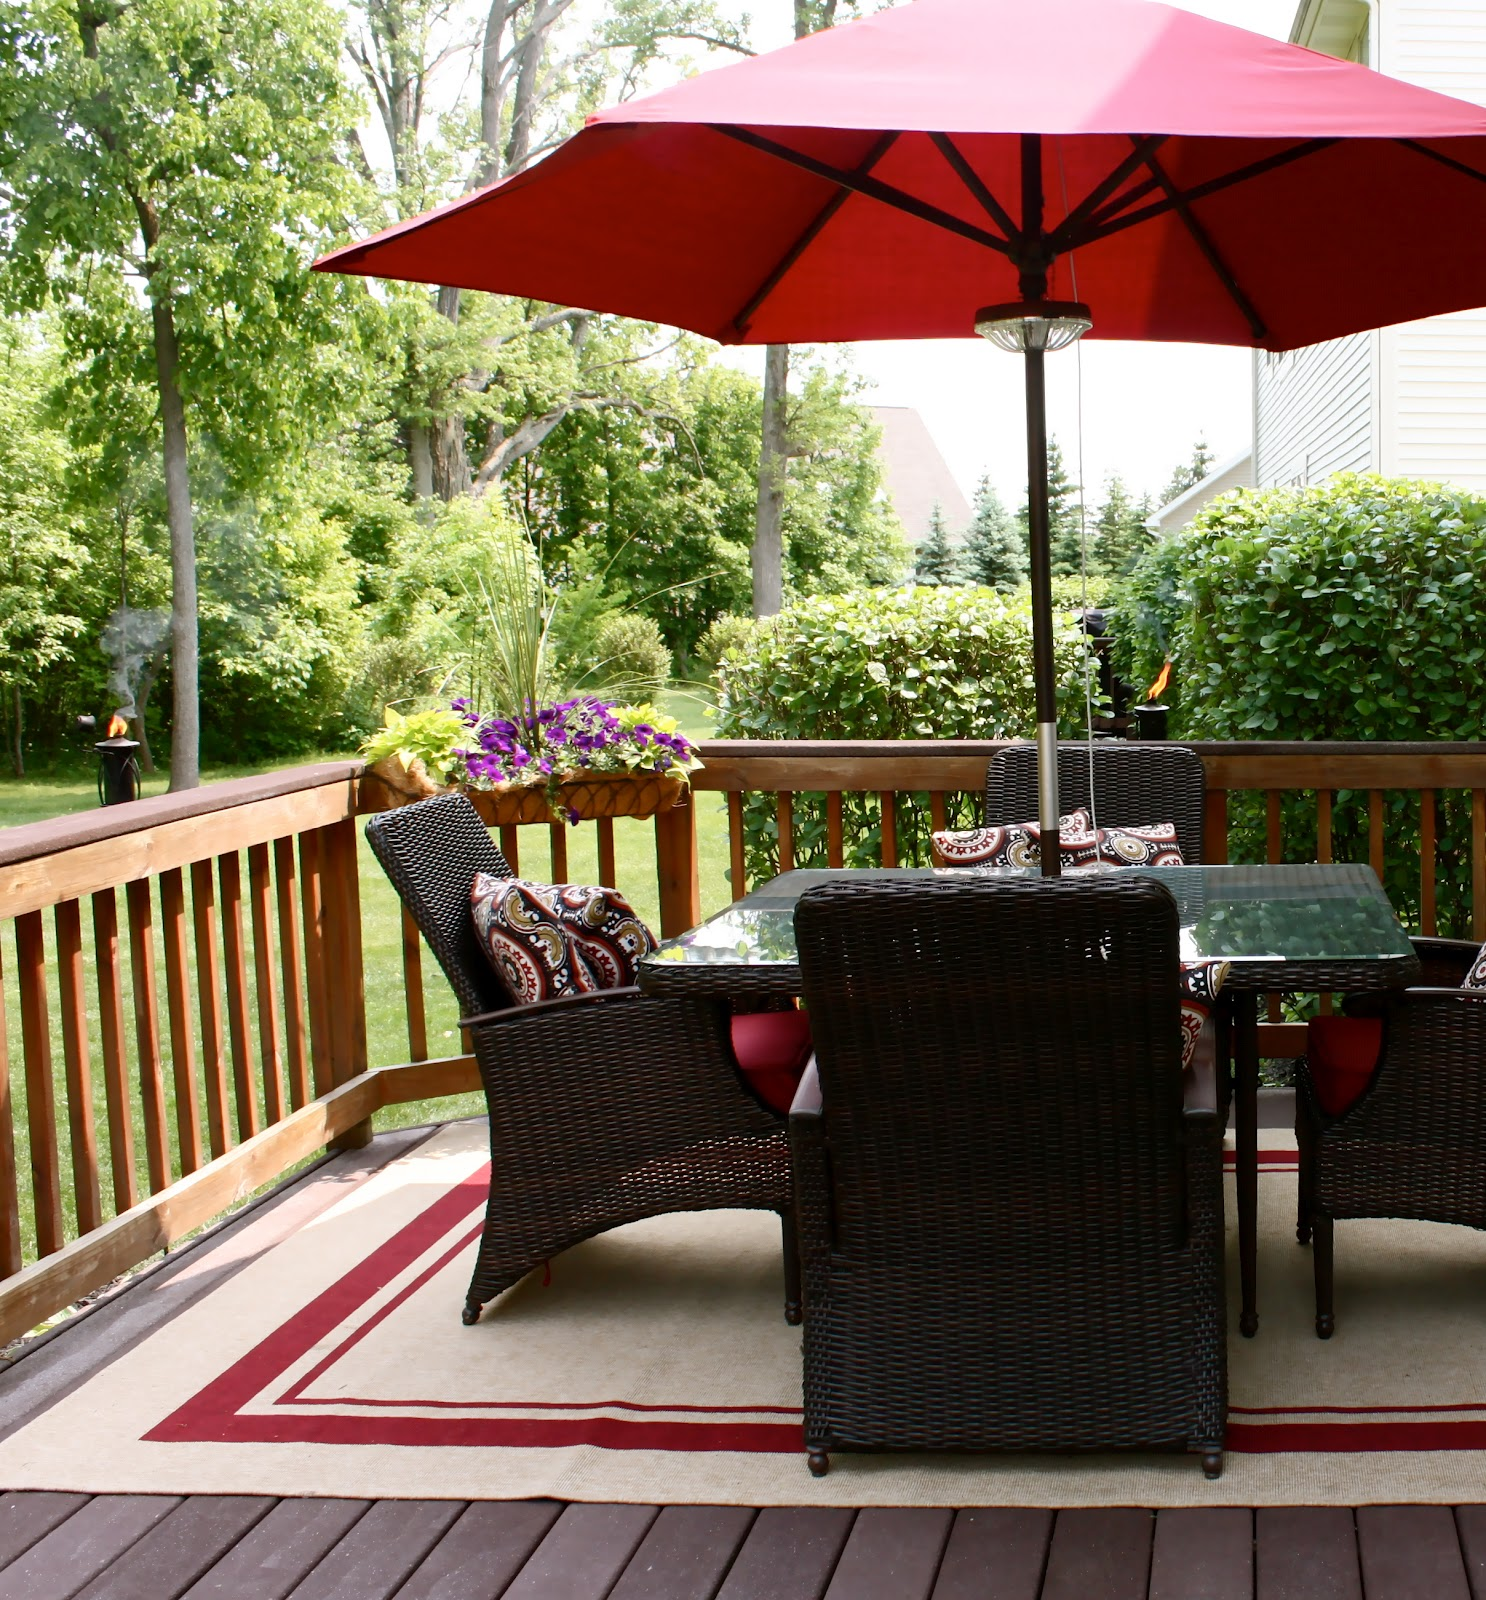 Outdoor Dining Room: The Yellow Cape Cod: Our Budget Friendly Outdoor Dining Room